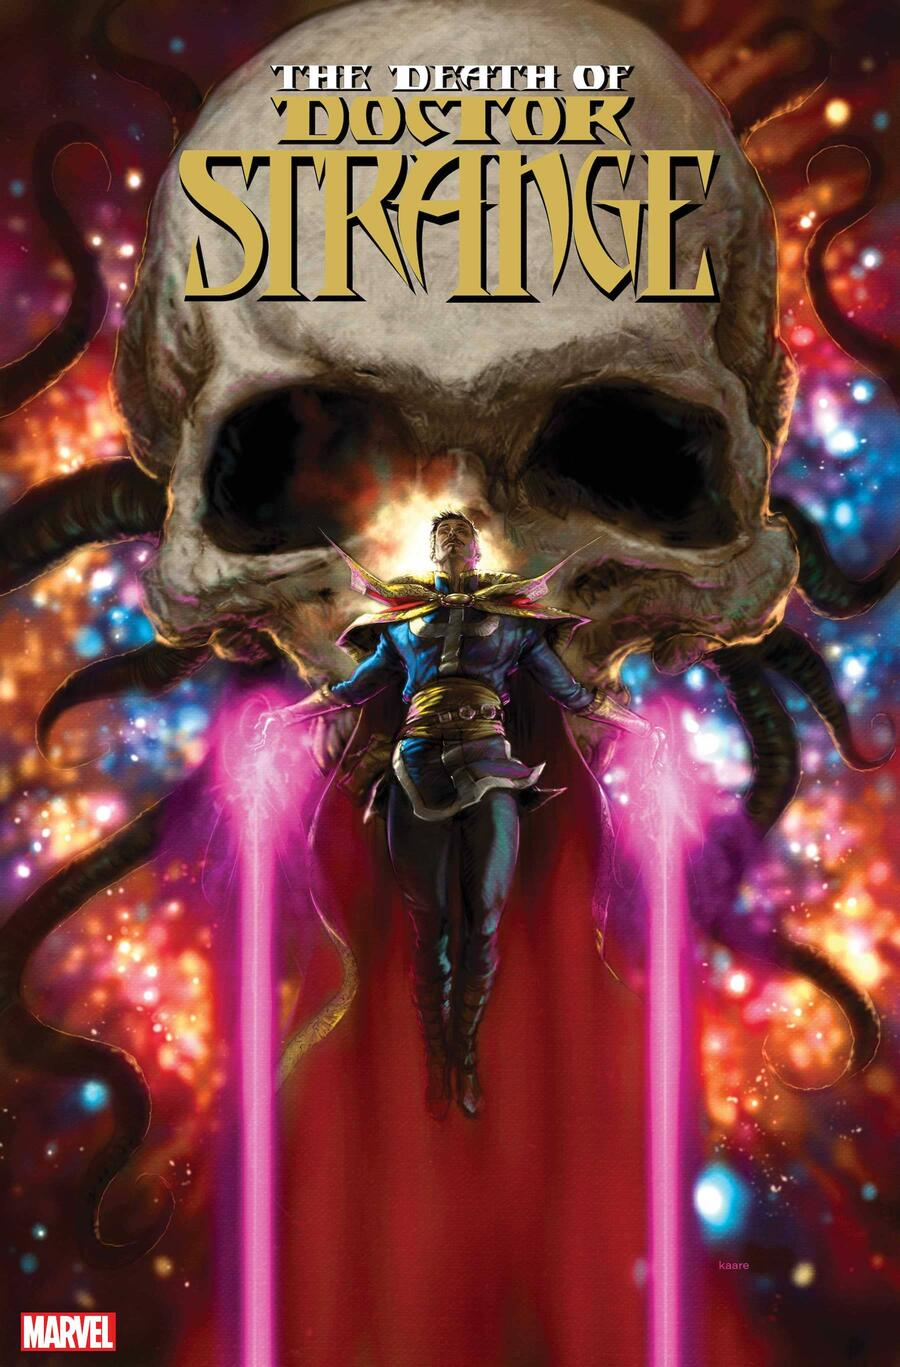 DEATH OF DOCTOR STRANGE #1 cover by Kaare Andrews